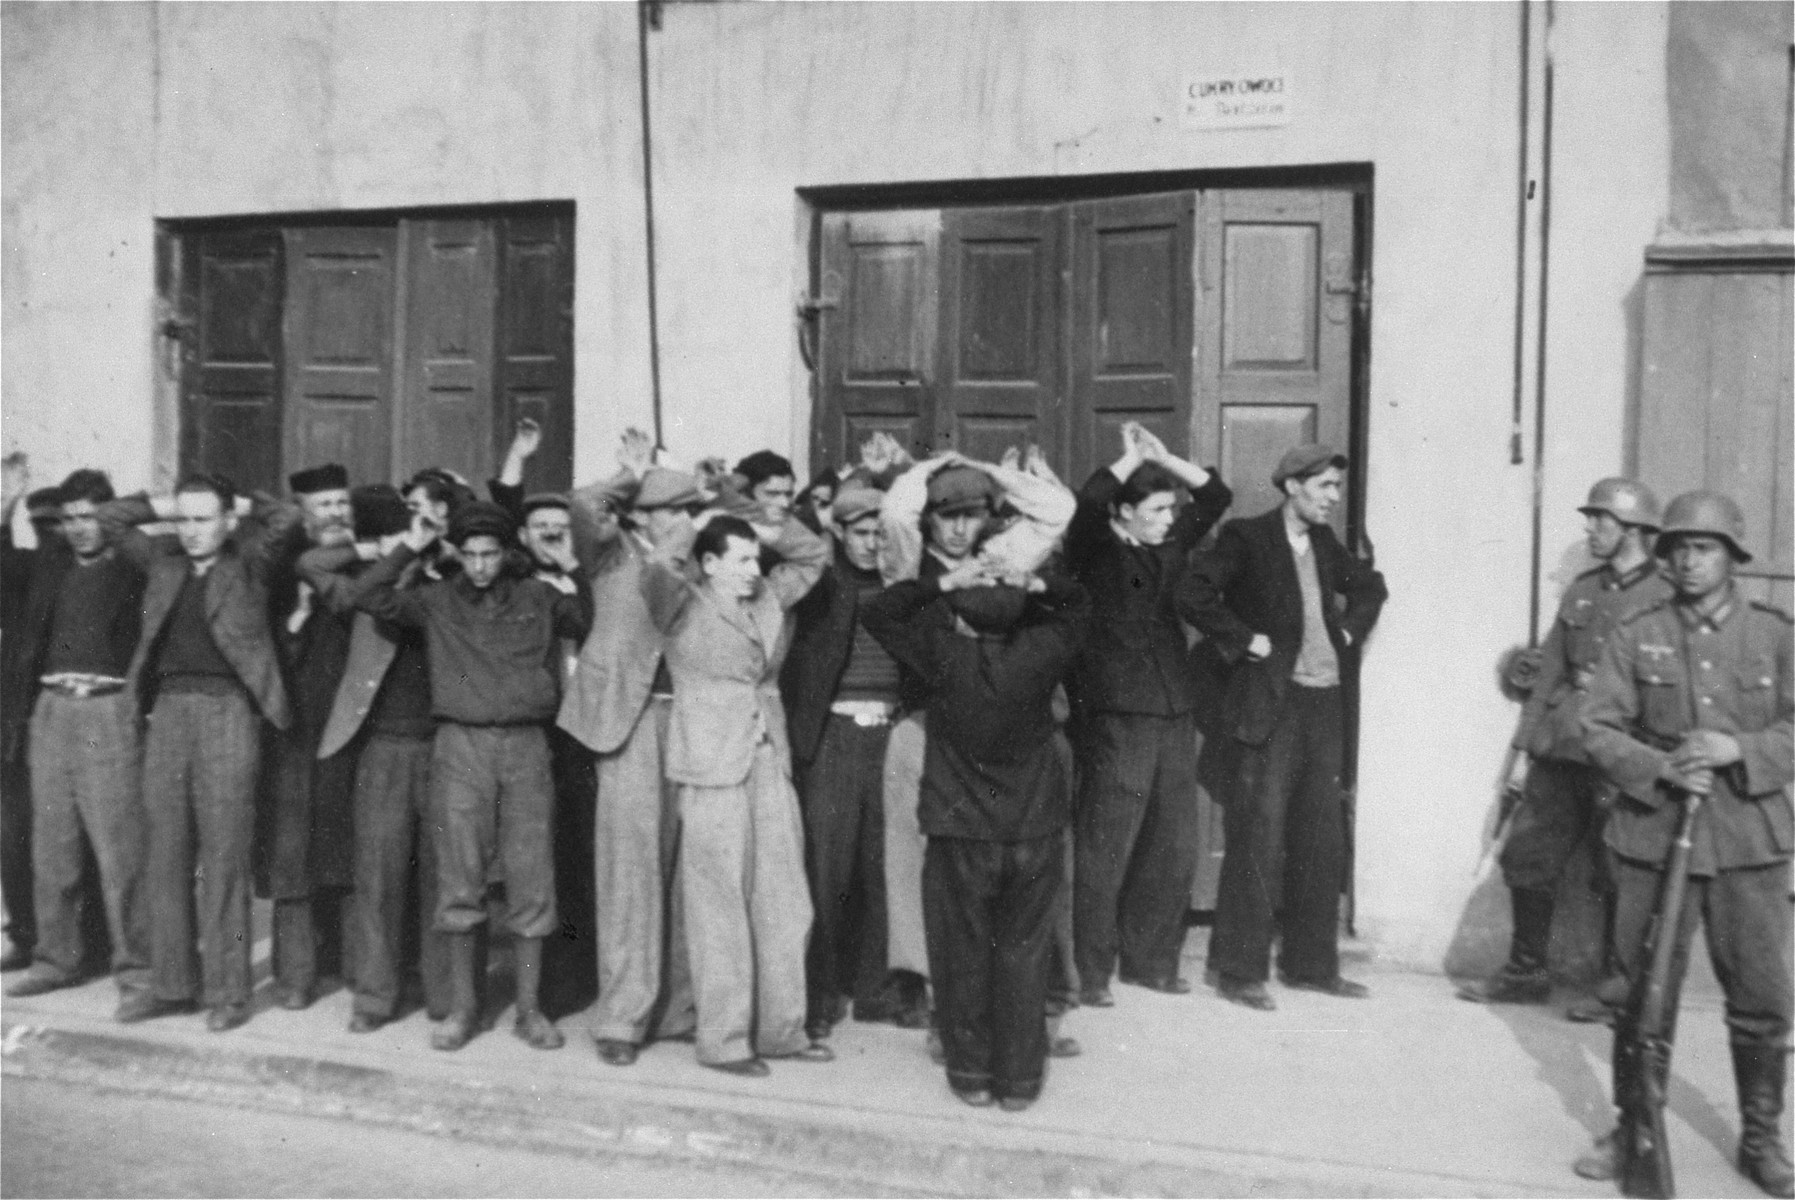 German soldiers round-up a group of Jewish men on a street in Czestochowa.